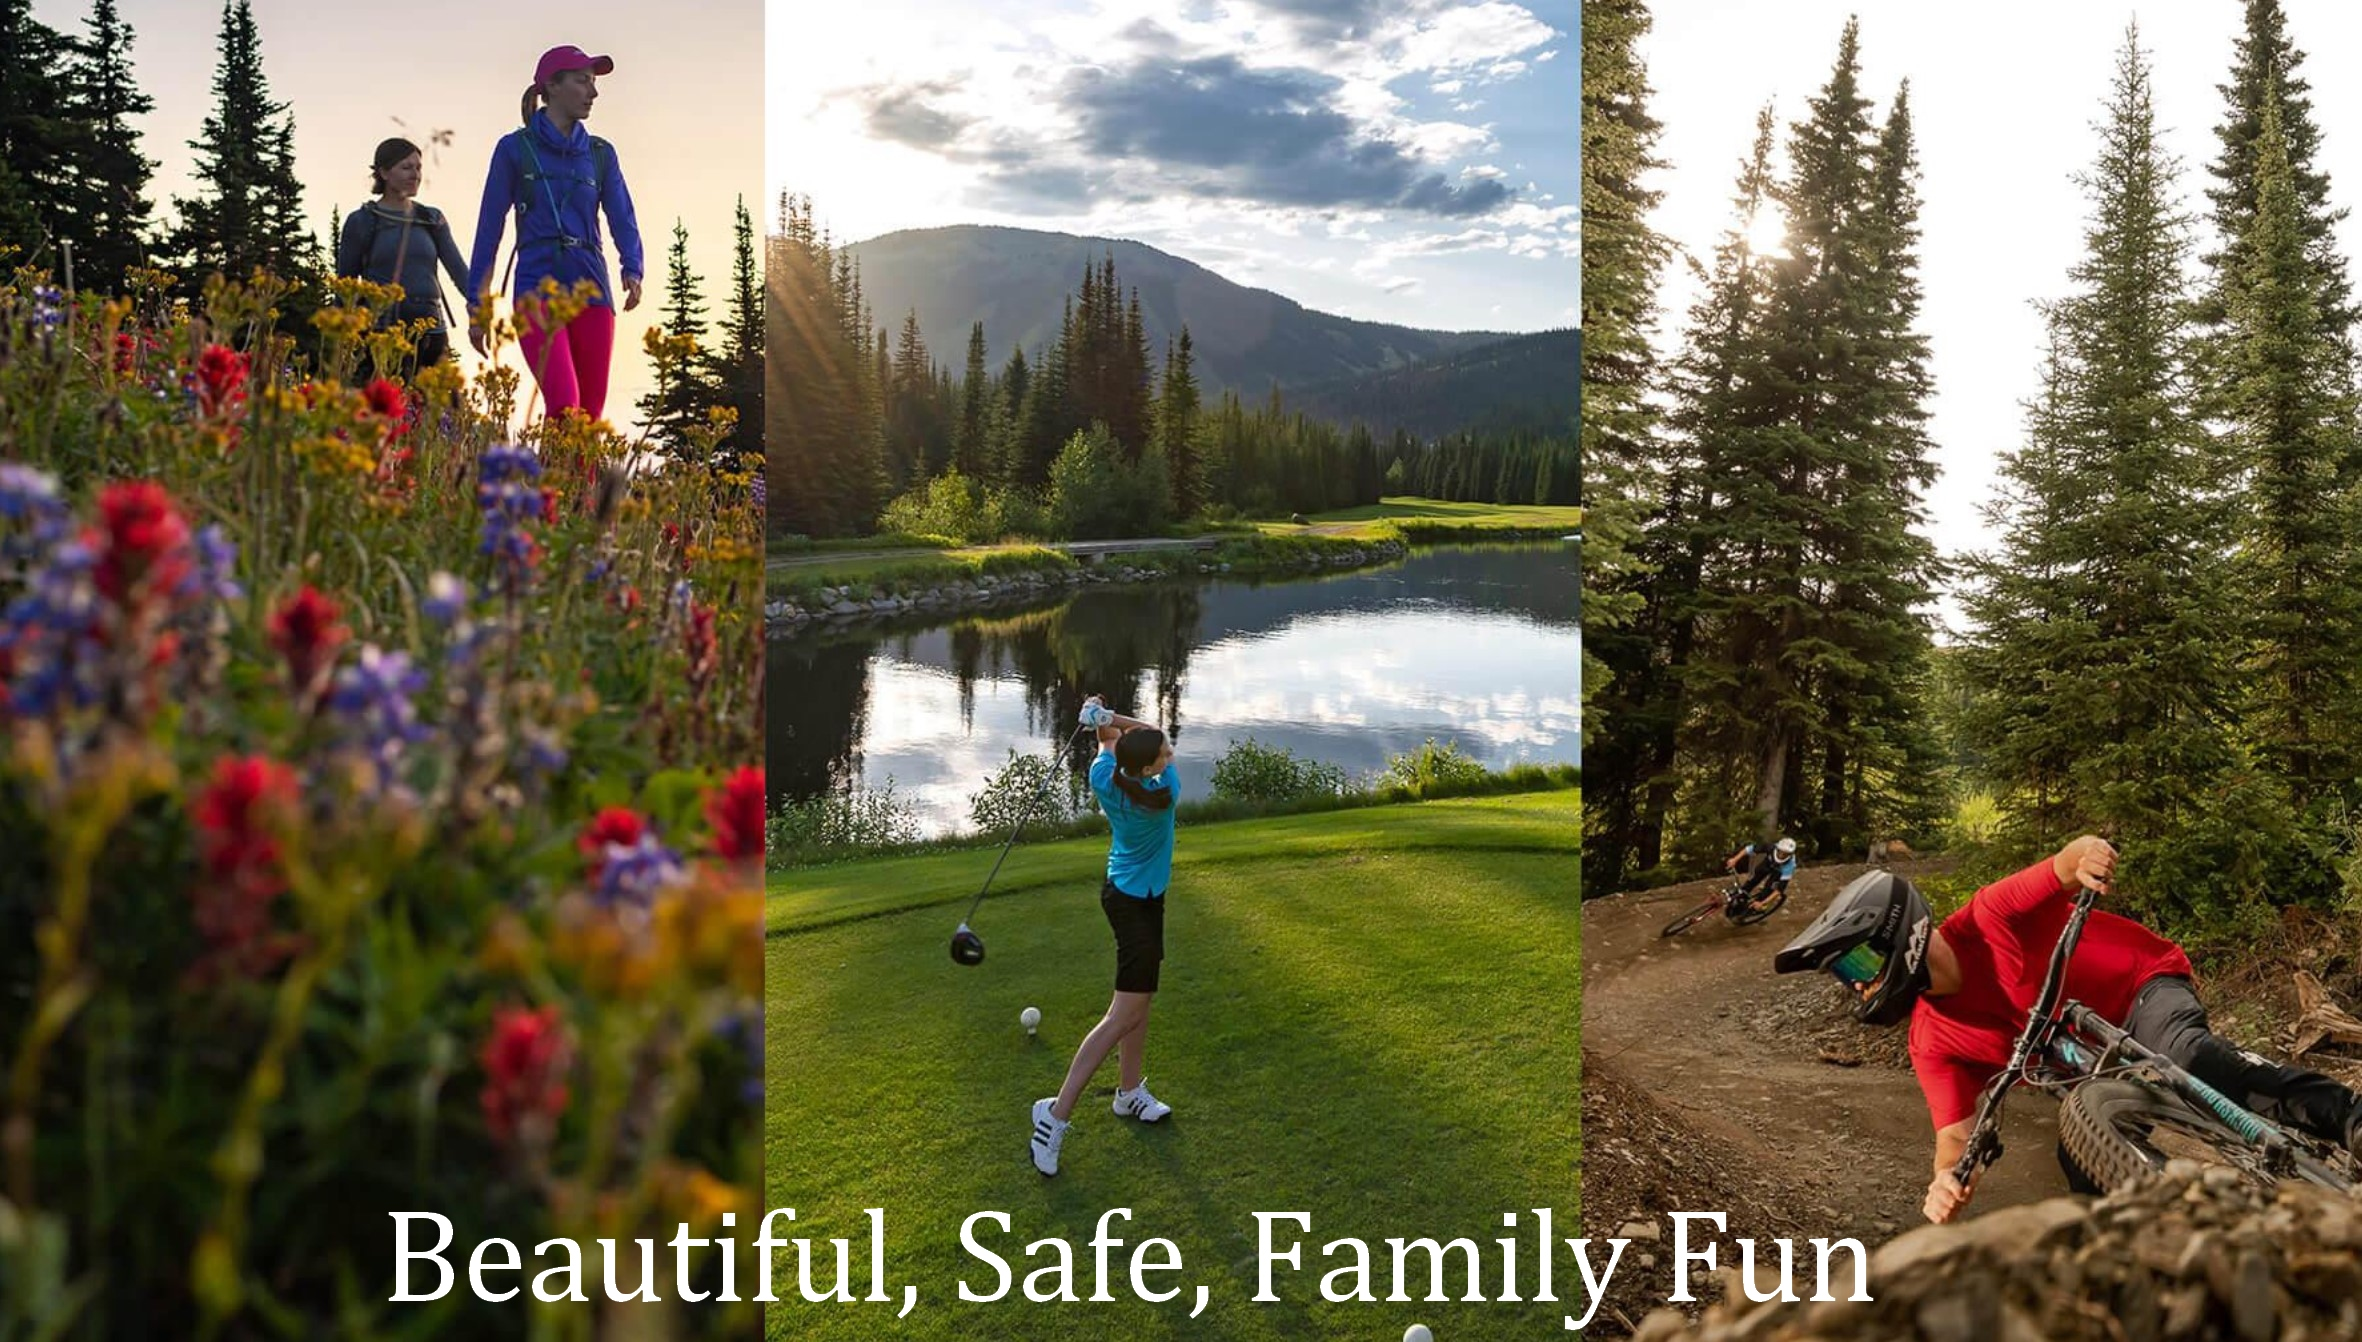 Best Sun Peaks accommodation options in Trapper's Landing, Stone's Throw, Village Walk, Trail's Edge, Timberline Village and dozens of other Best Sun Peaks vacation rentals